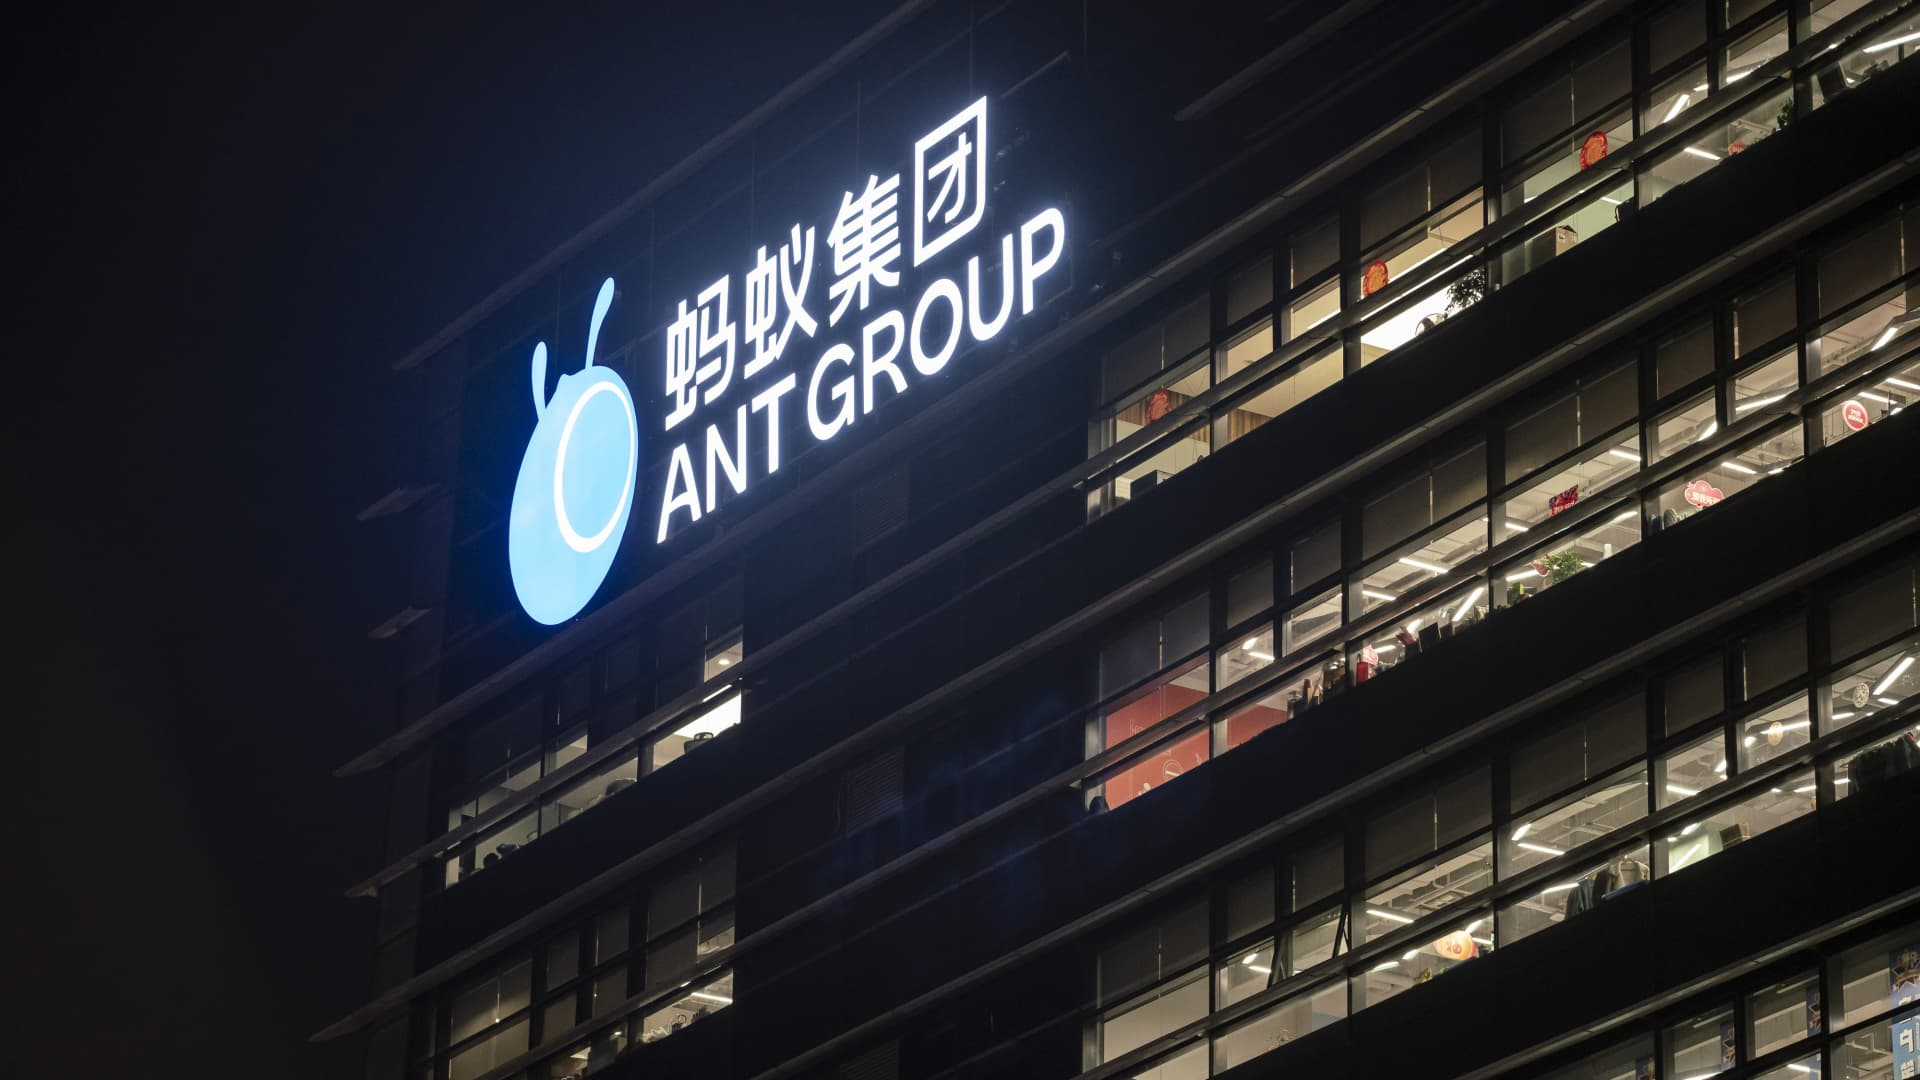 The Ant Group Co. headquarters in Hangzhou, China, on Wednesday, Jan. 20, 2021.